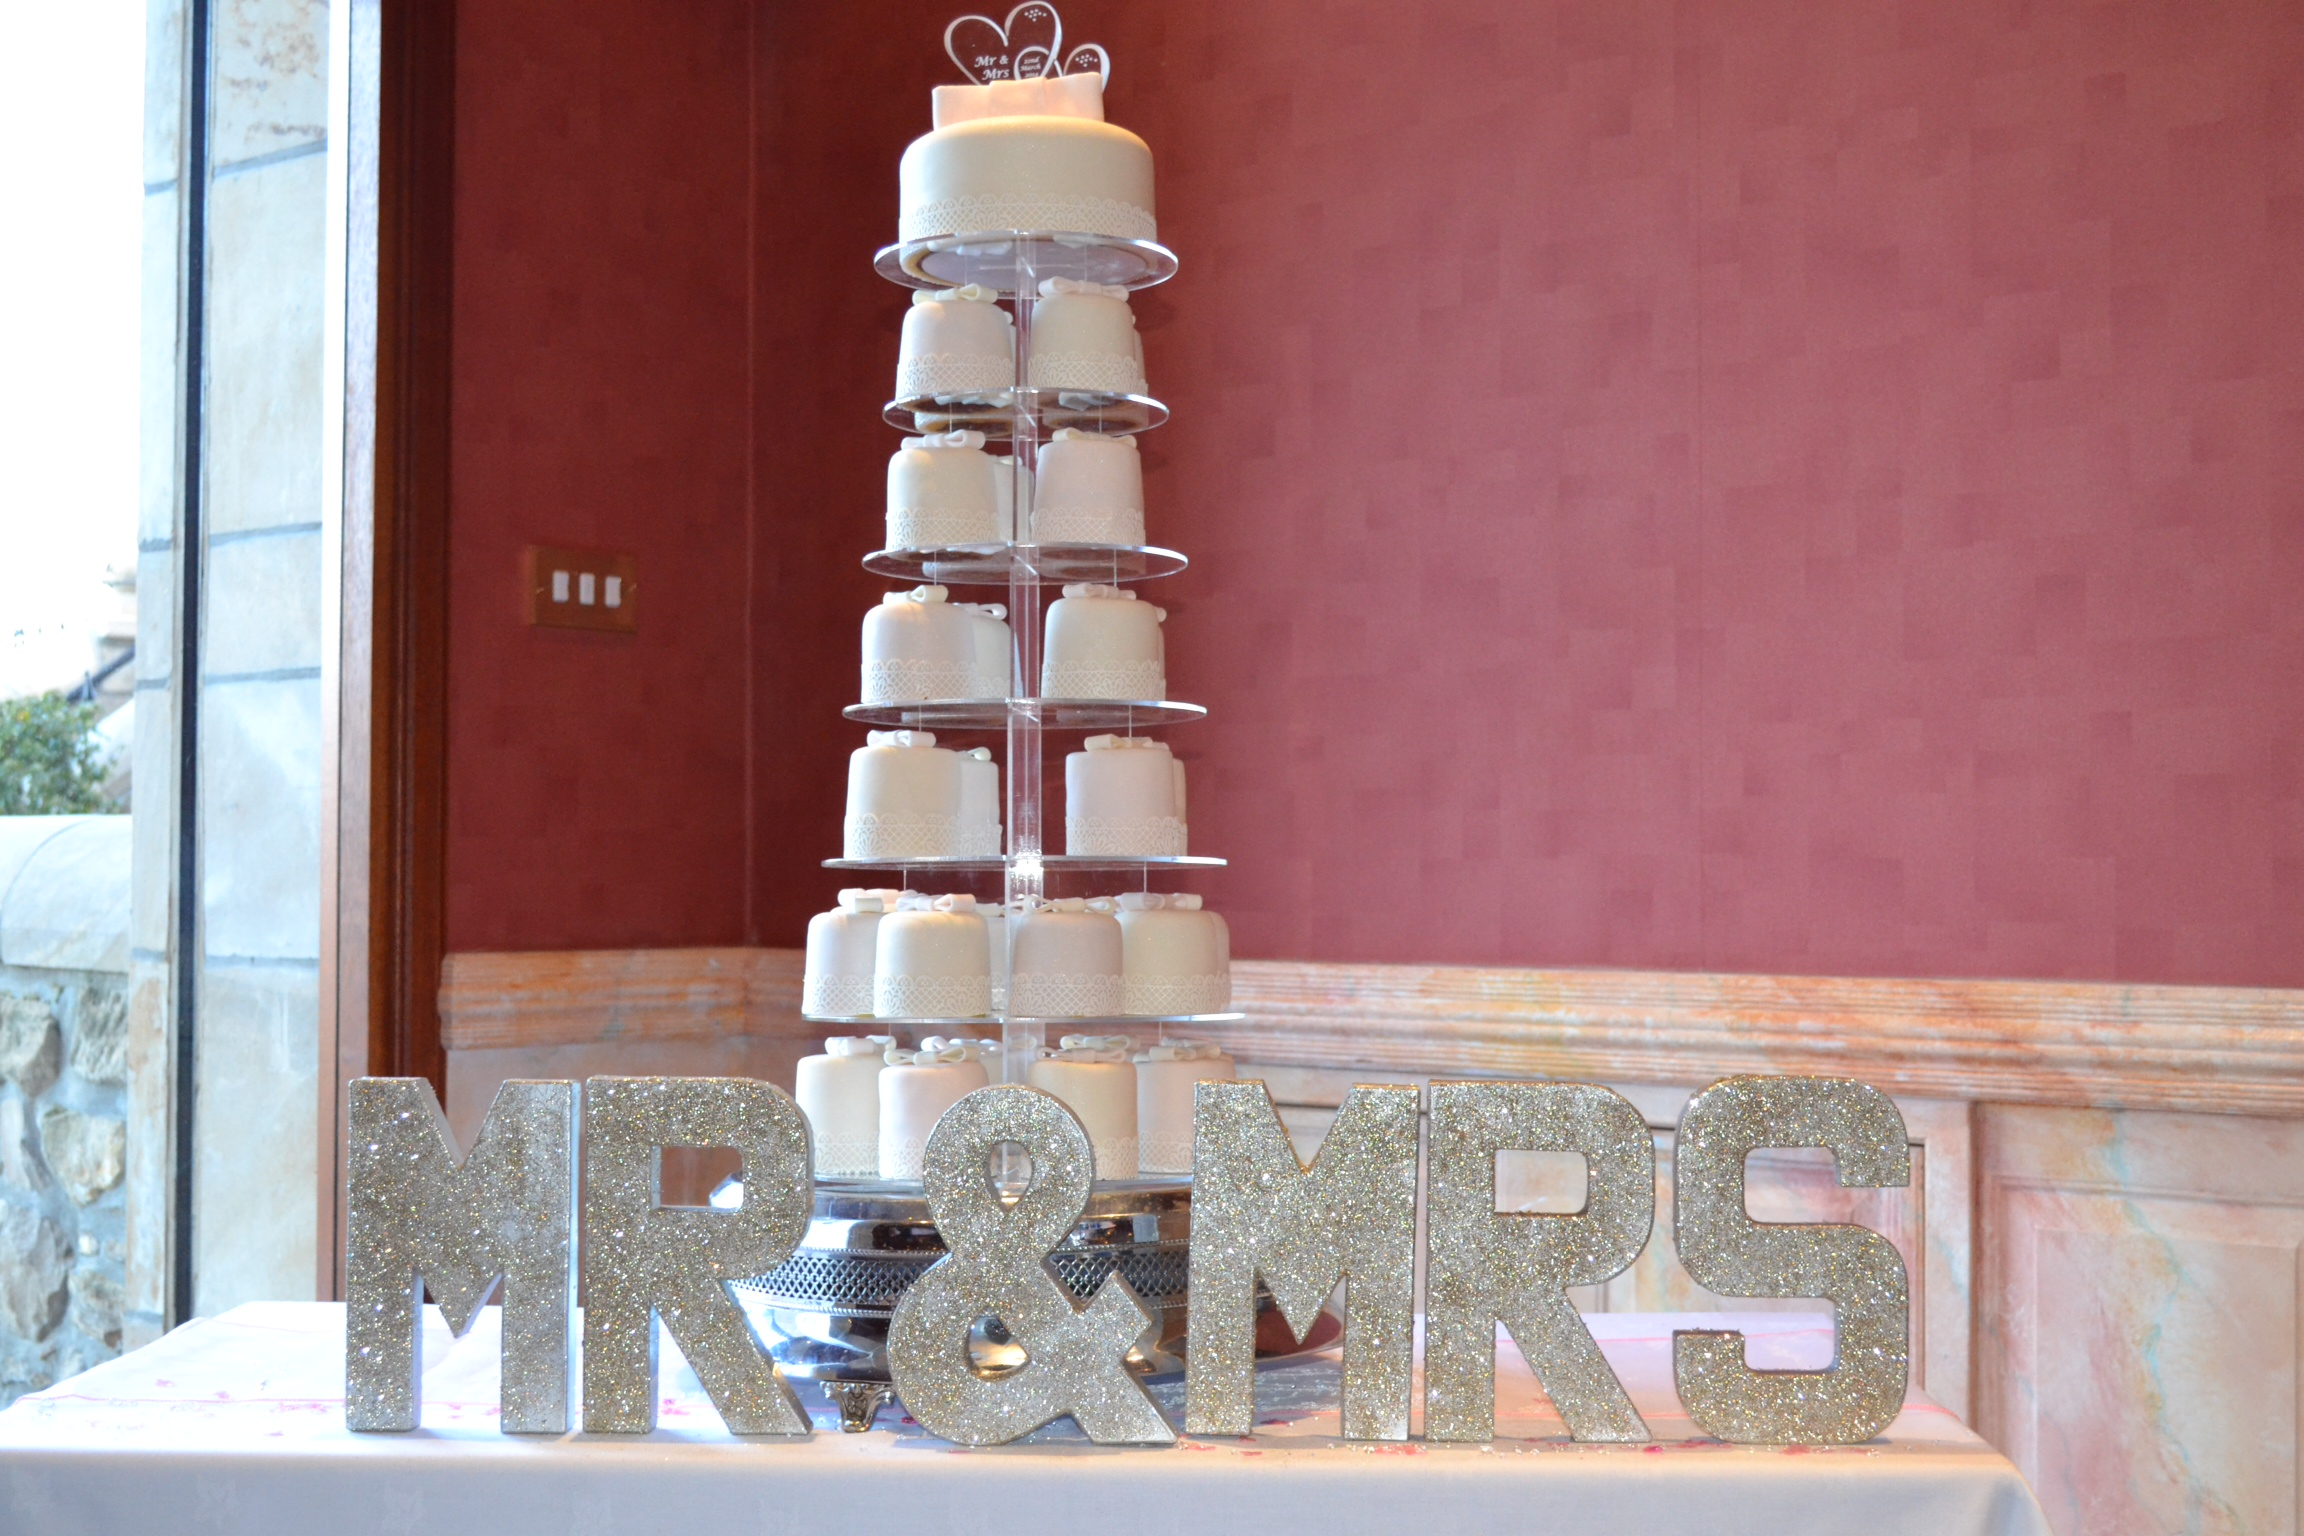 Wedding cake made from mini wedding cakes